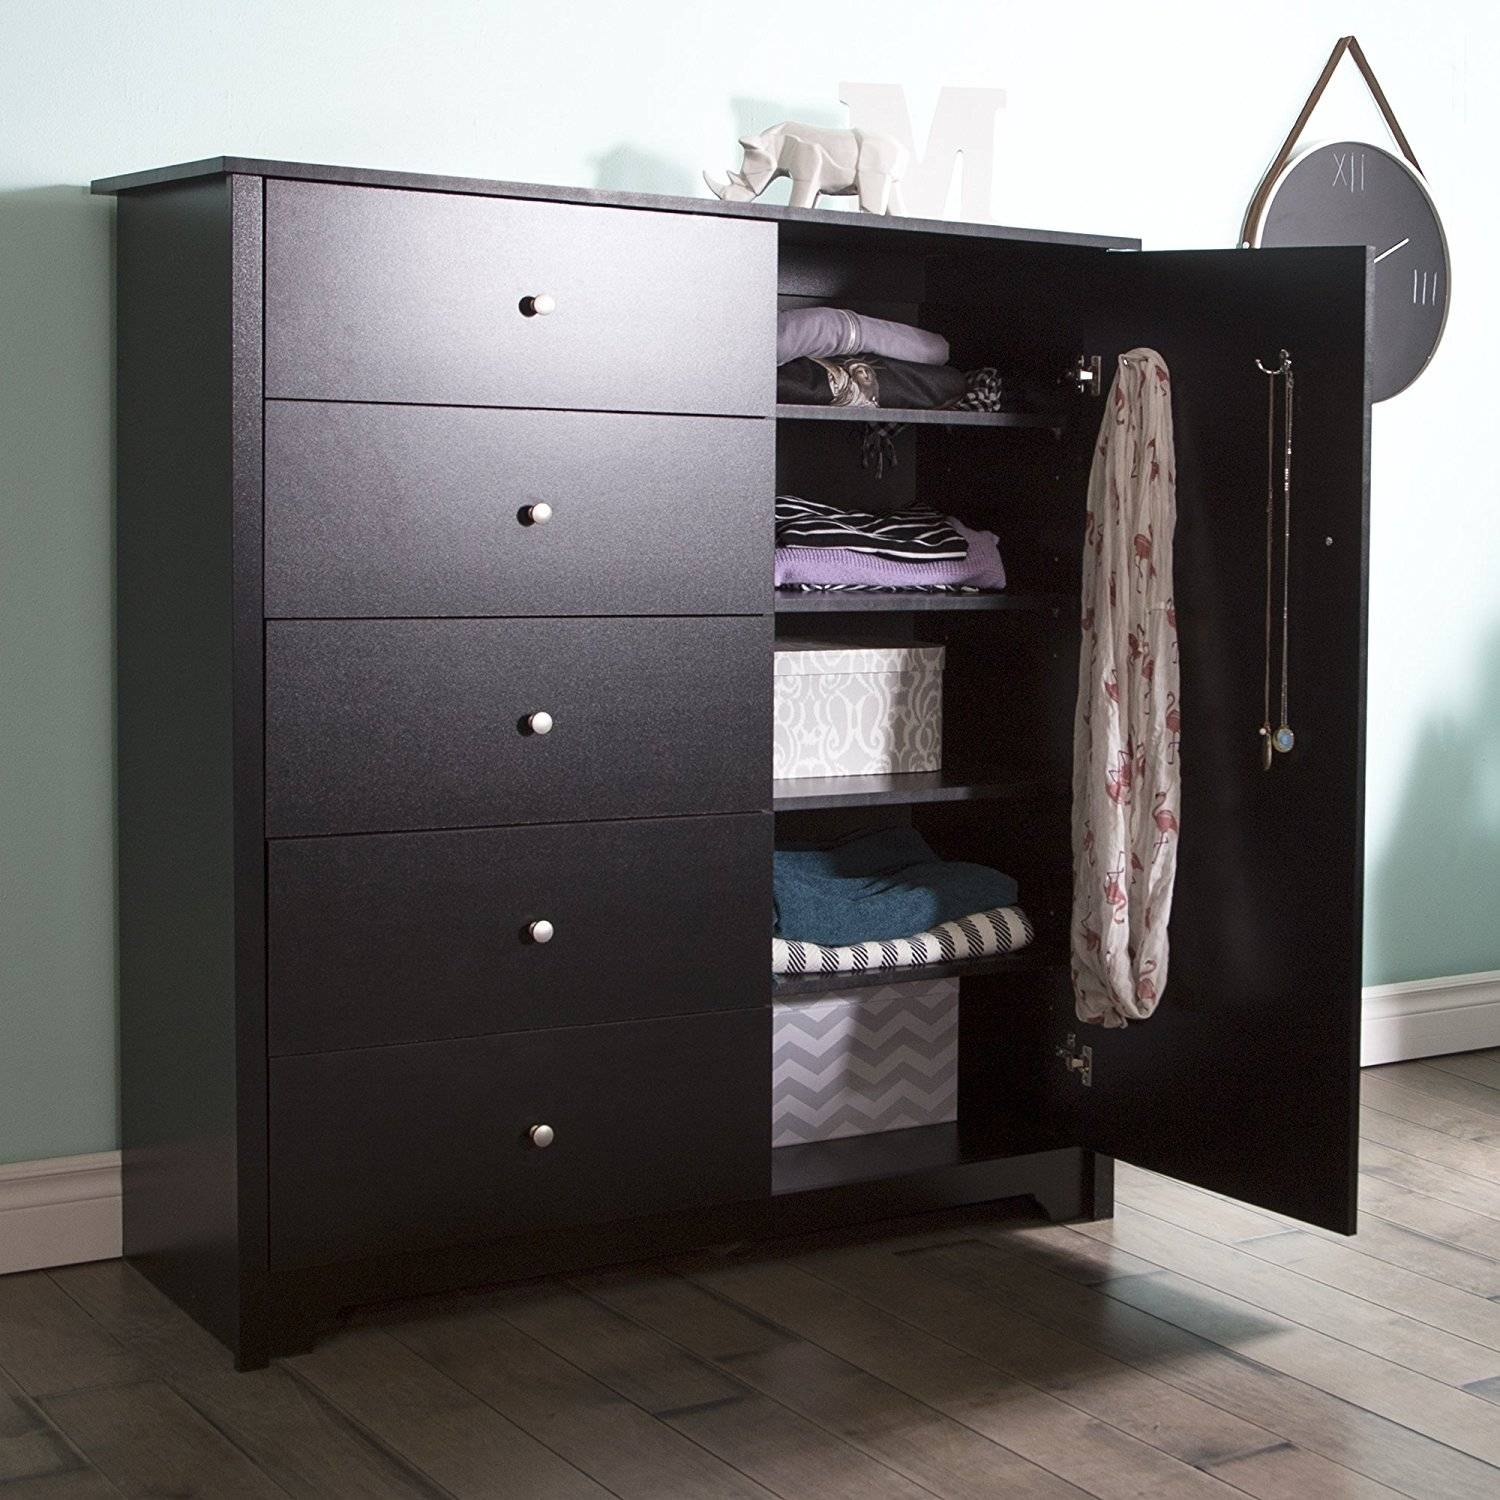 Furniture: 12 Inch Deep Dresser With Tall Dresser Chest And Ikea with 12 Inch Deep Sideboards (Image 11 of 30)